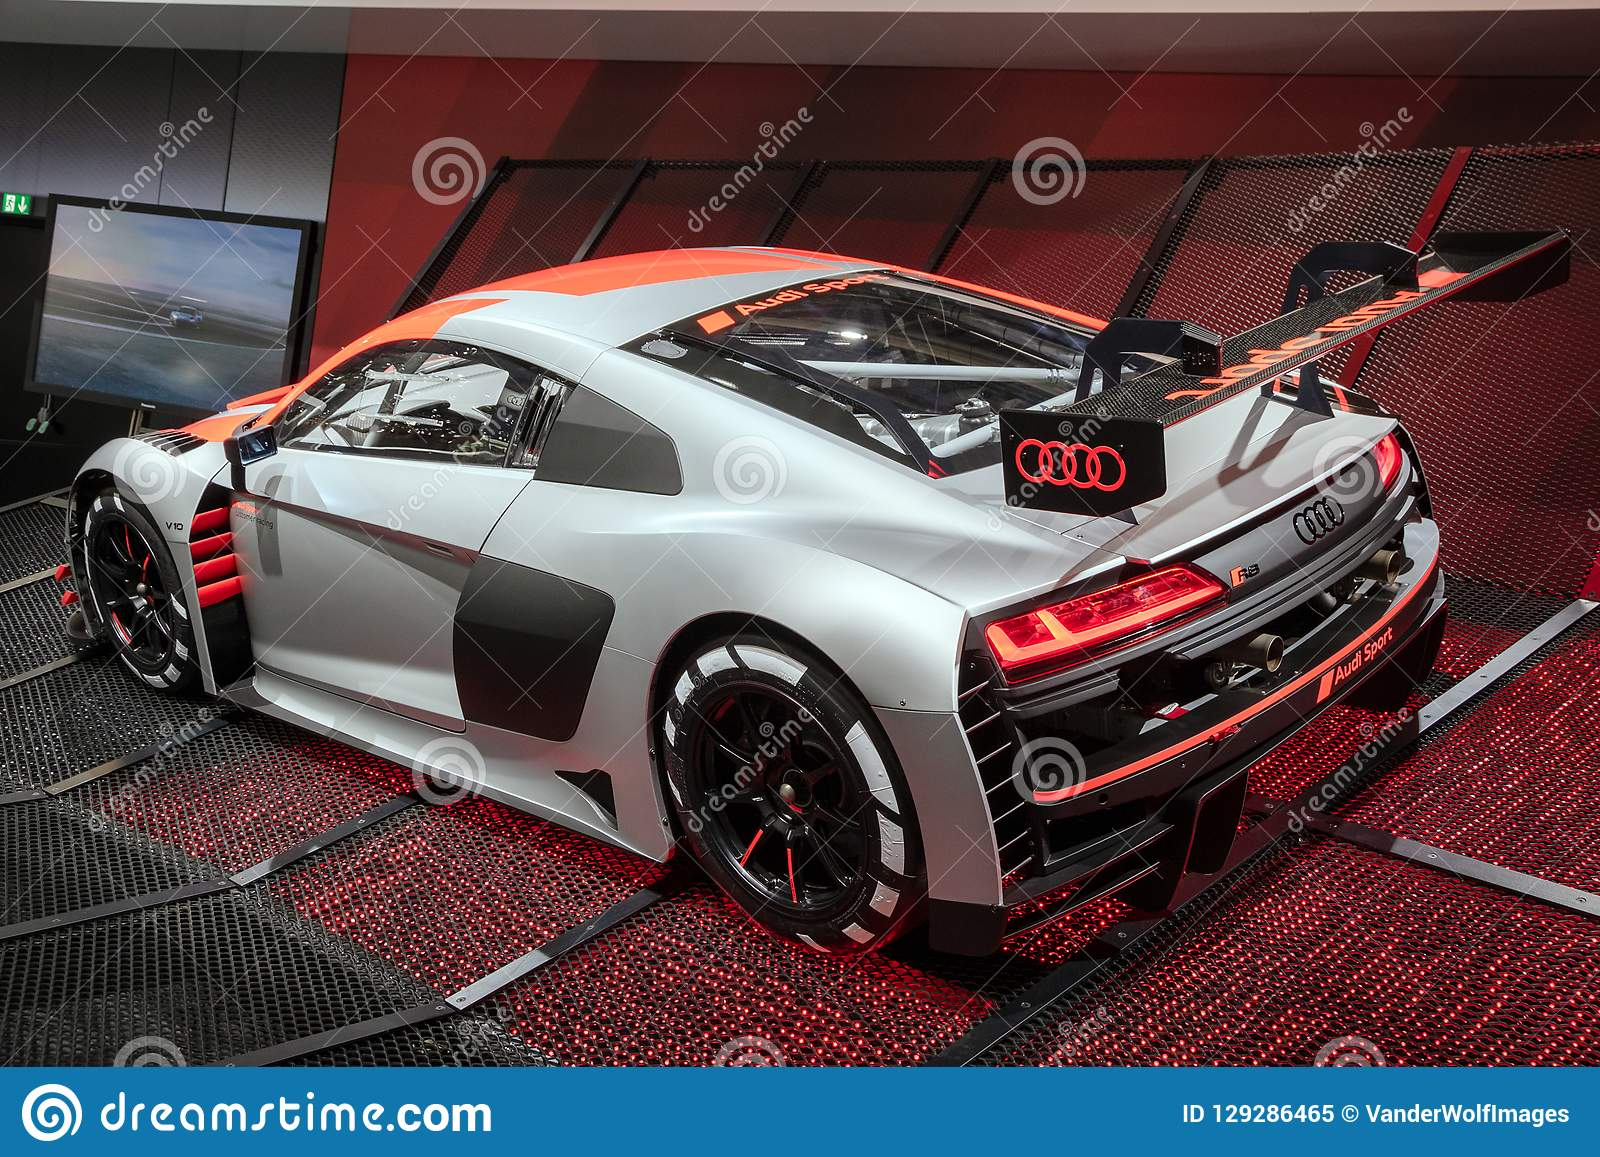 New Audi R8 Lms Gt3 Race Car Editorial Image Image Of Automotive